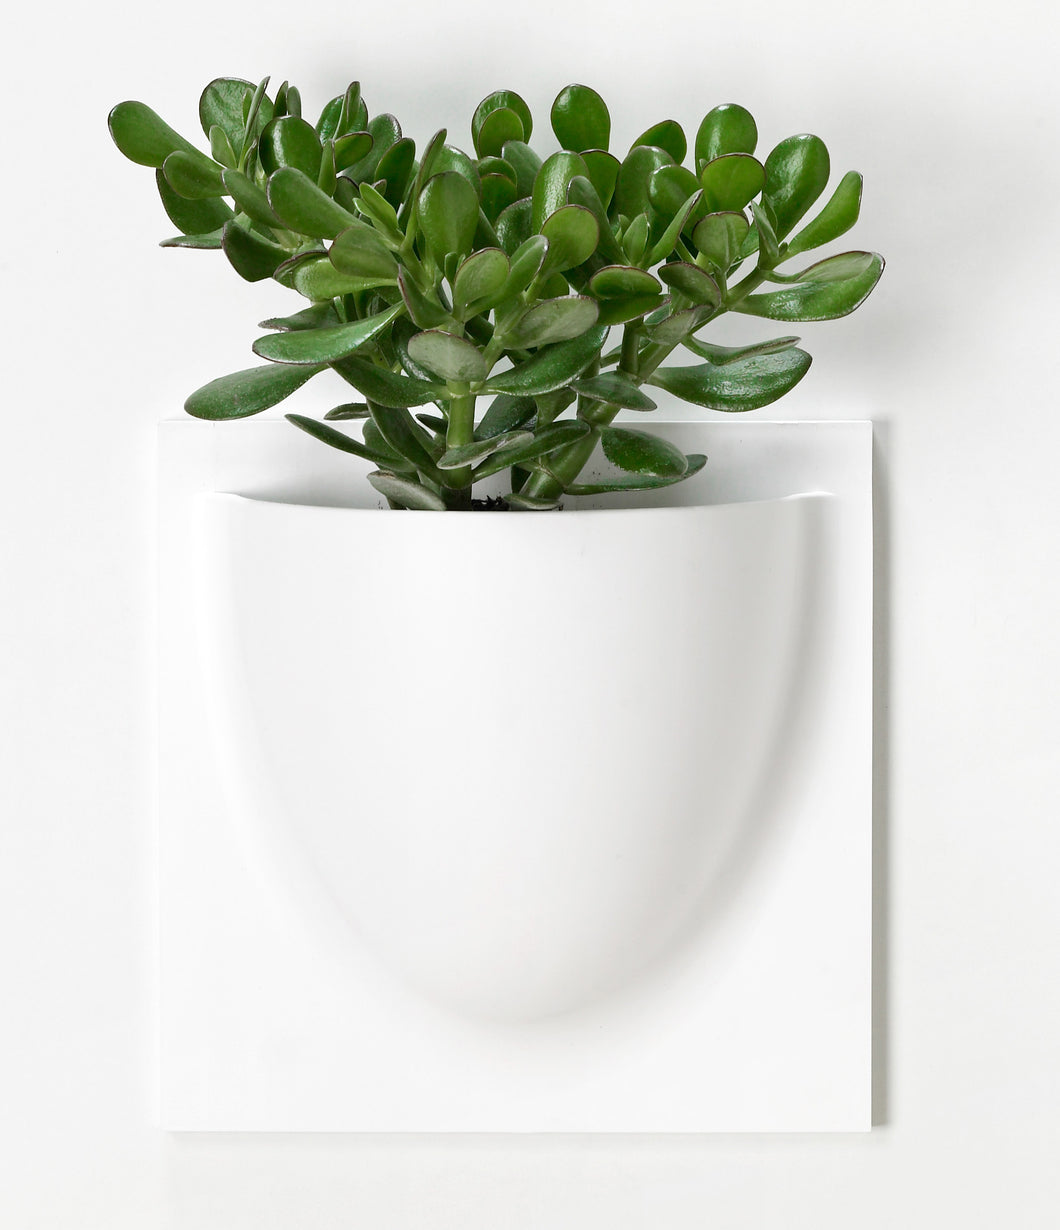 Verti Plants Bio Wall Planter - Black, White, Grey